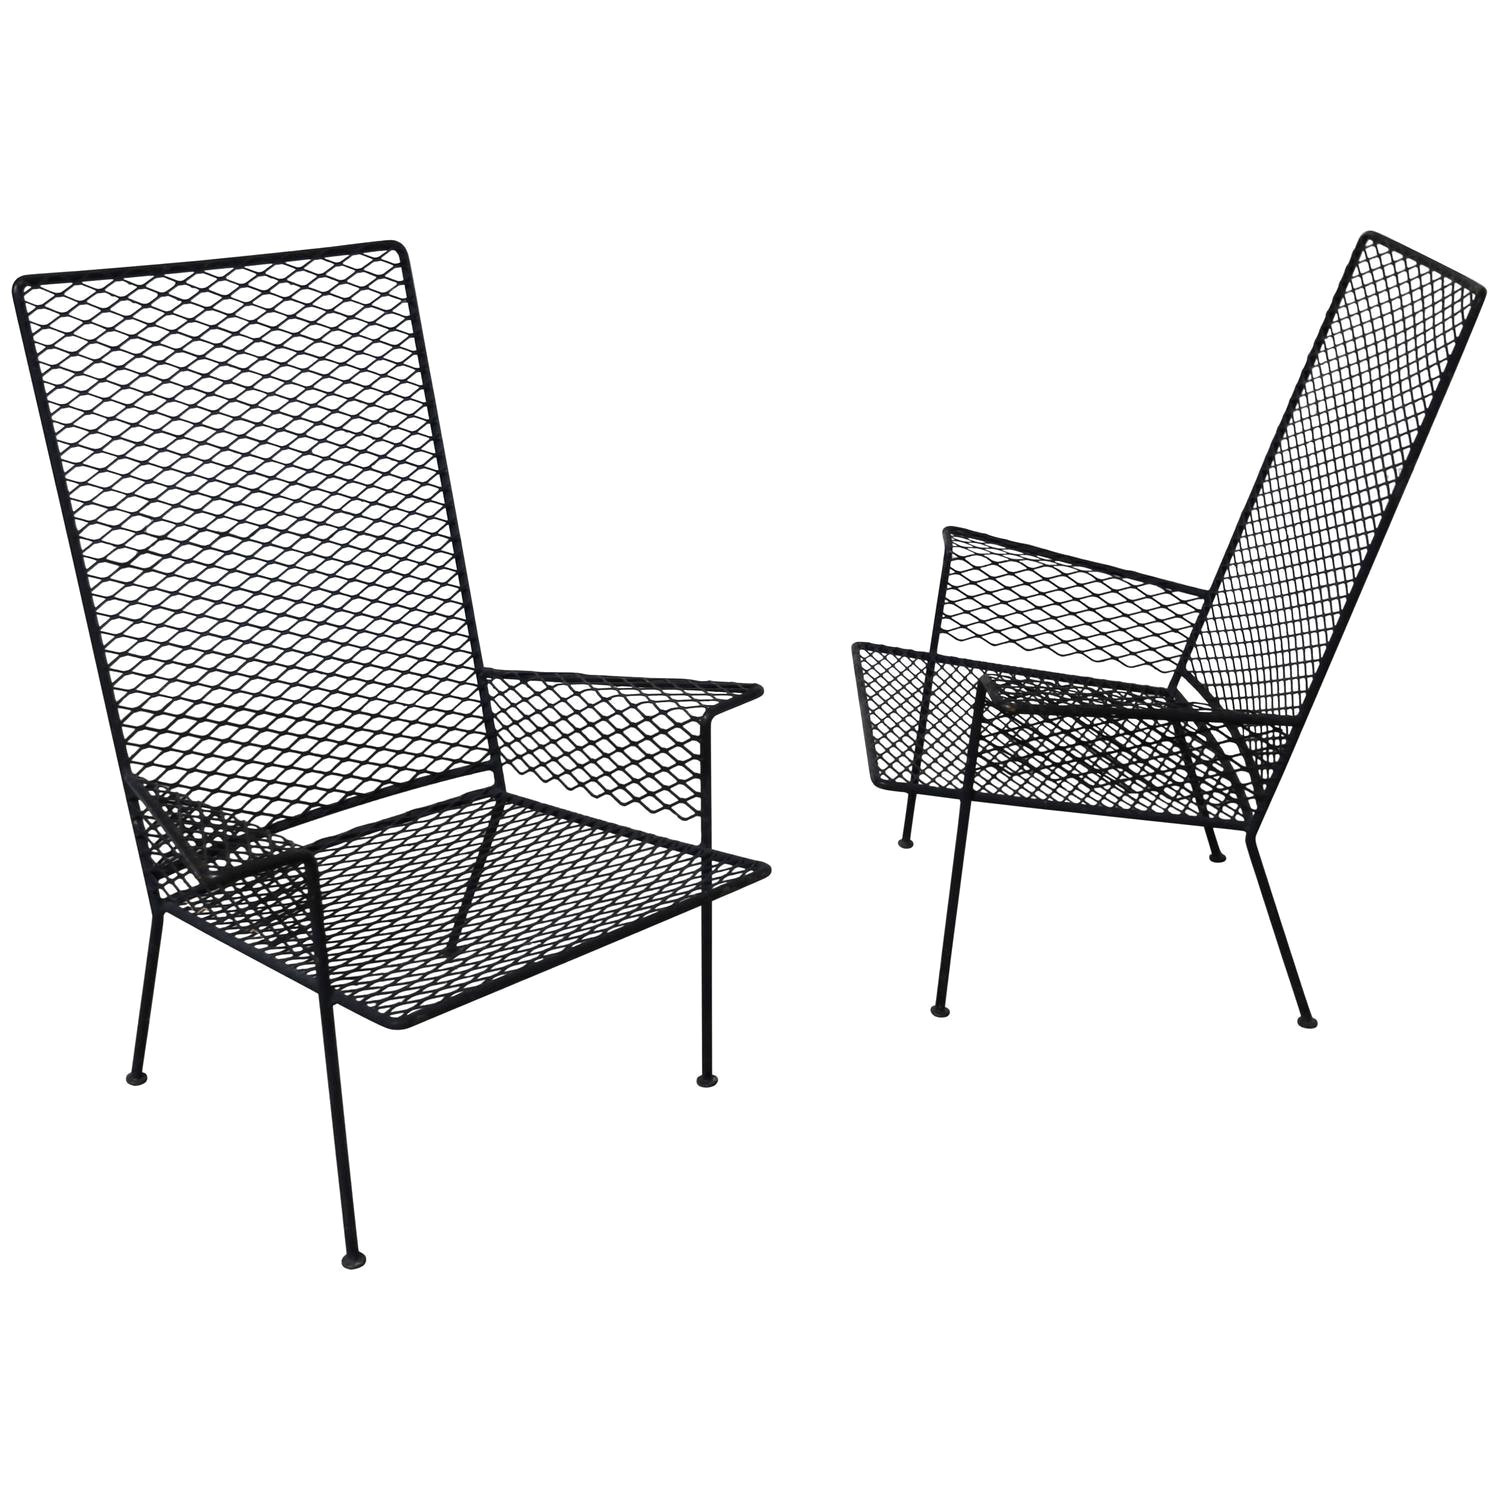 hampton bay patio furniture replacement parts best of hampton bay patio furniture replacement parts best of